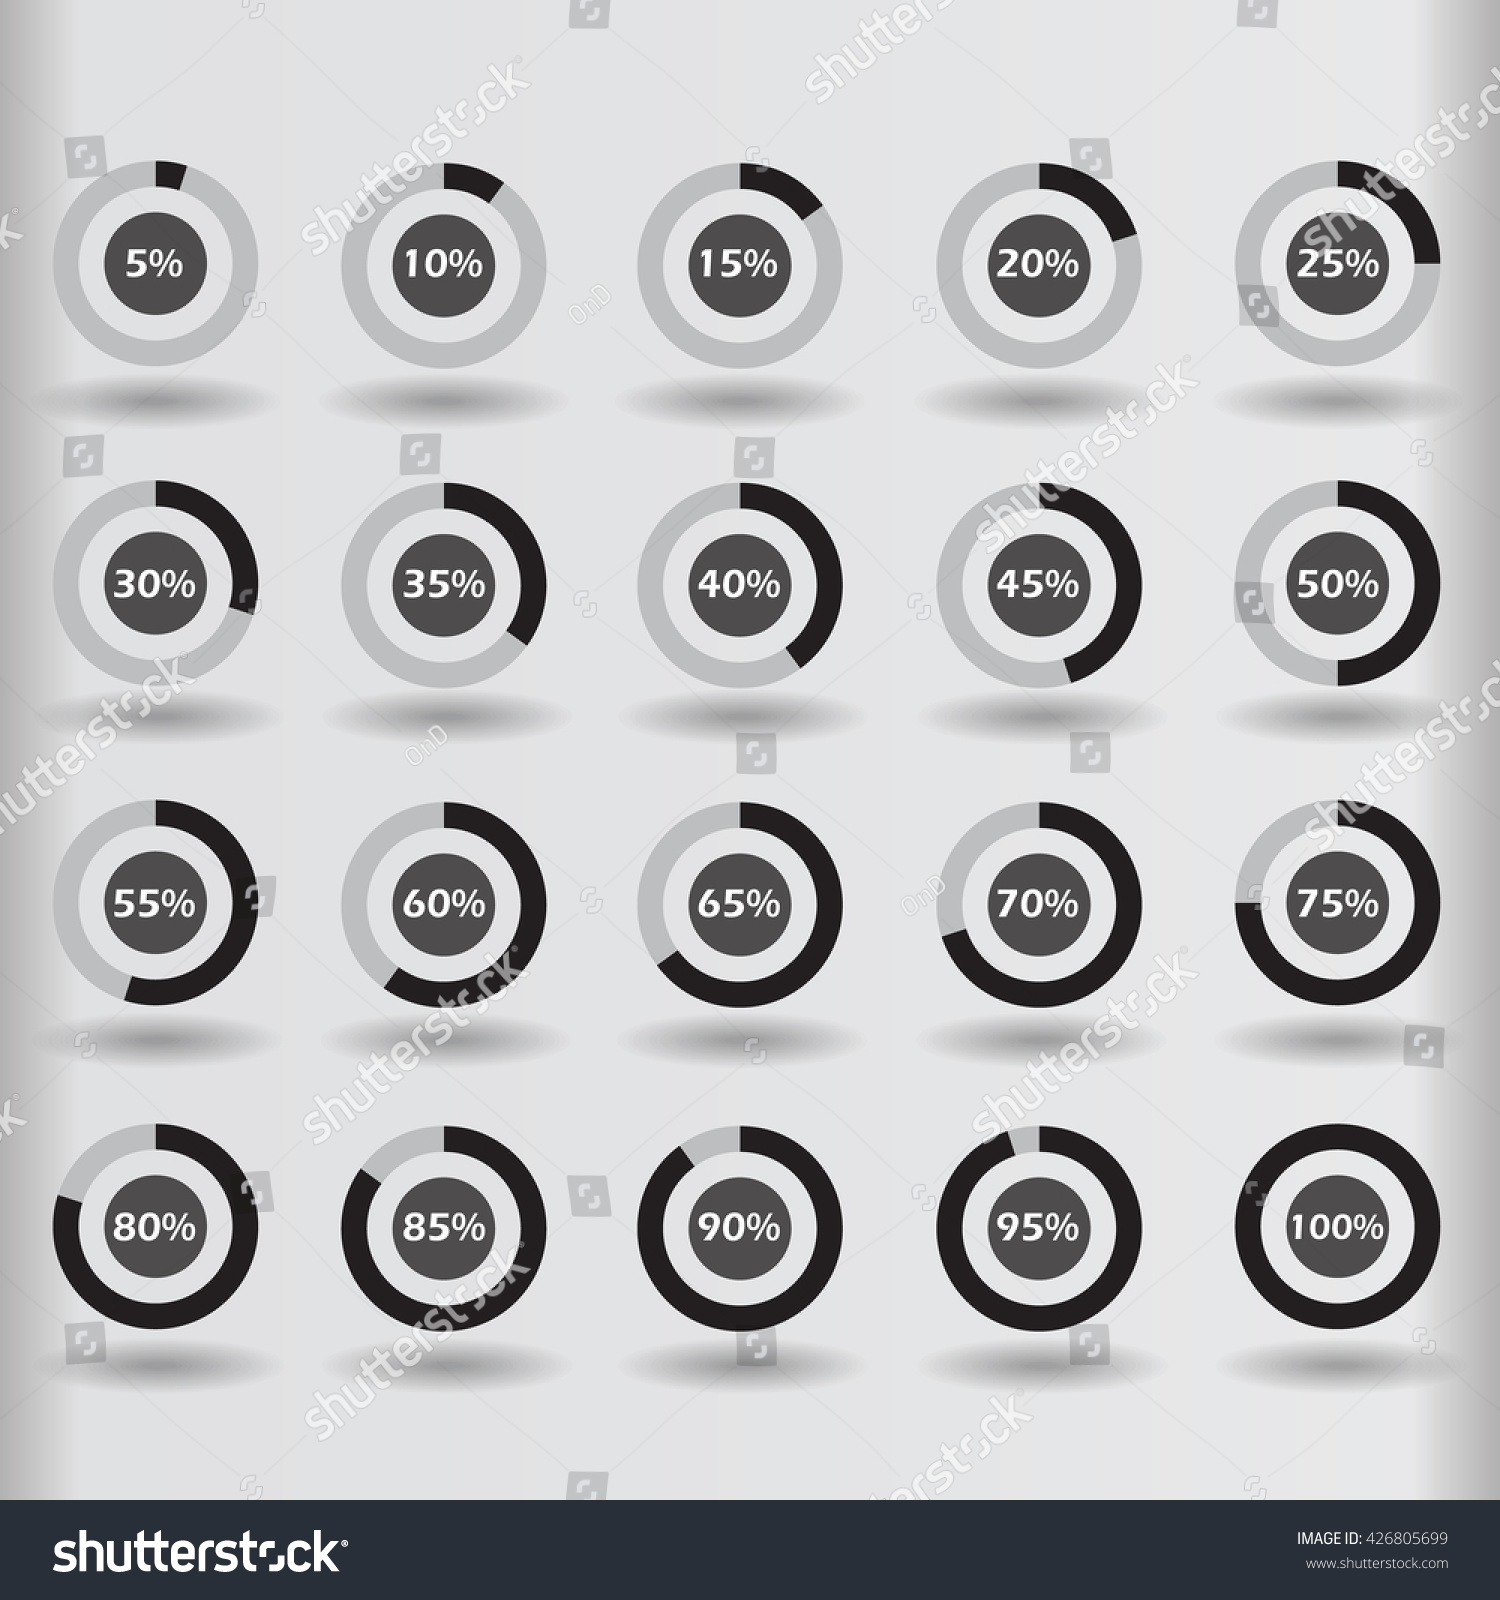 Unusual 1 Round Label Template Small 1 Year Experience Resume Format For Dot Net Round 10 Best Resumes 10 Steps To Creating A Resume Youthful 12 Month Budget Template Brown12 Piece Puzzle Template Icons Template Pie Graph Circle Percentage Stock Vector 426805699 ..